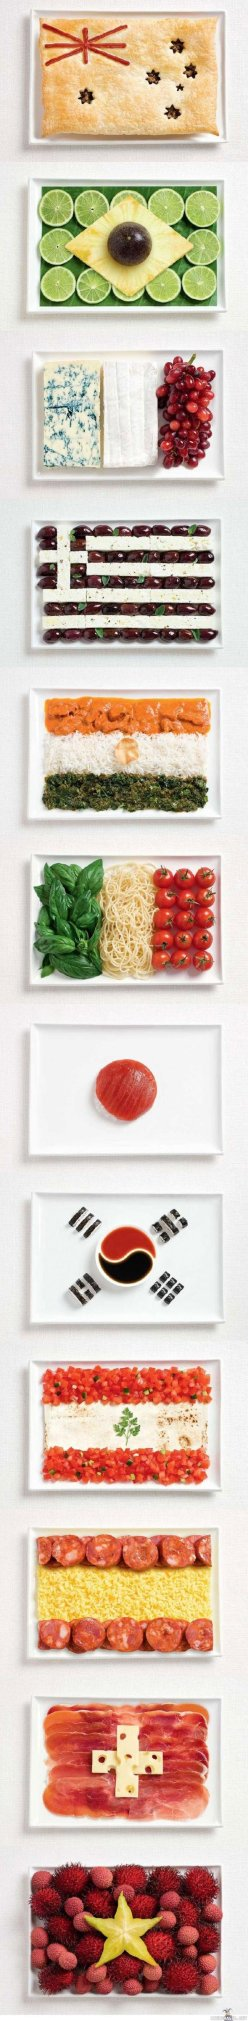 food flags plates chicquero